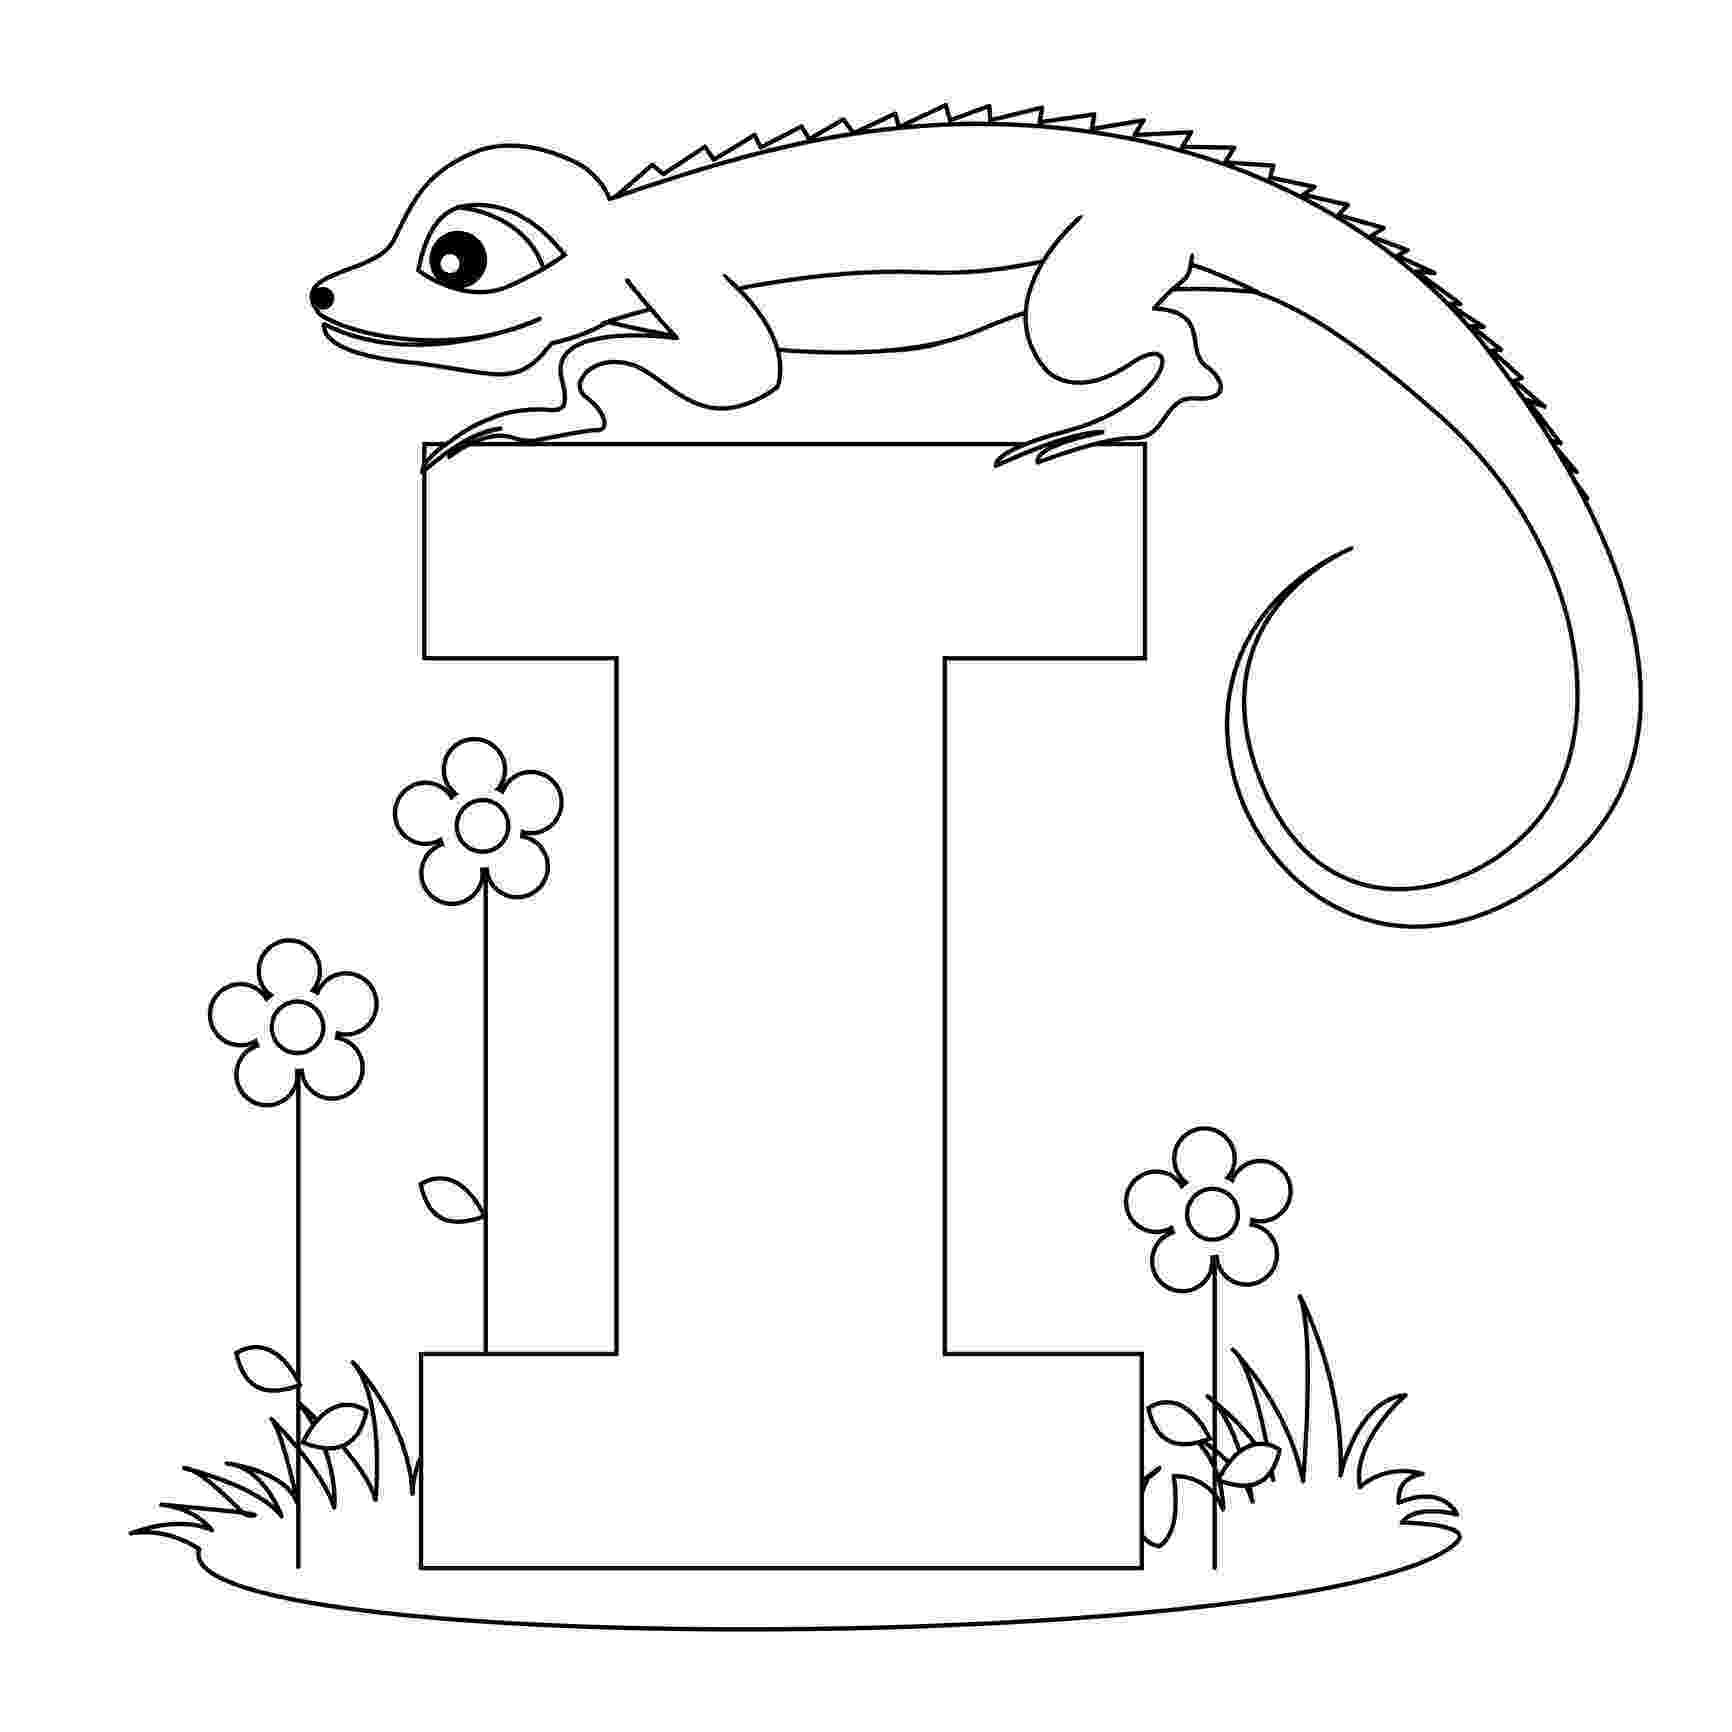 childrens colouring pages alphabet free printable alphabet coloring pages for kids best alphabet pages childrens colouring 1 2